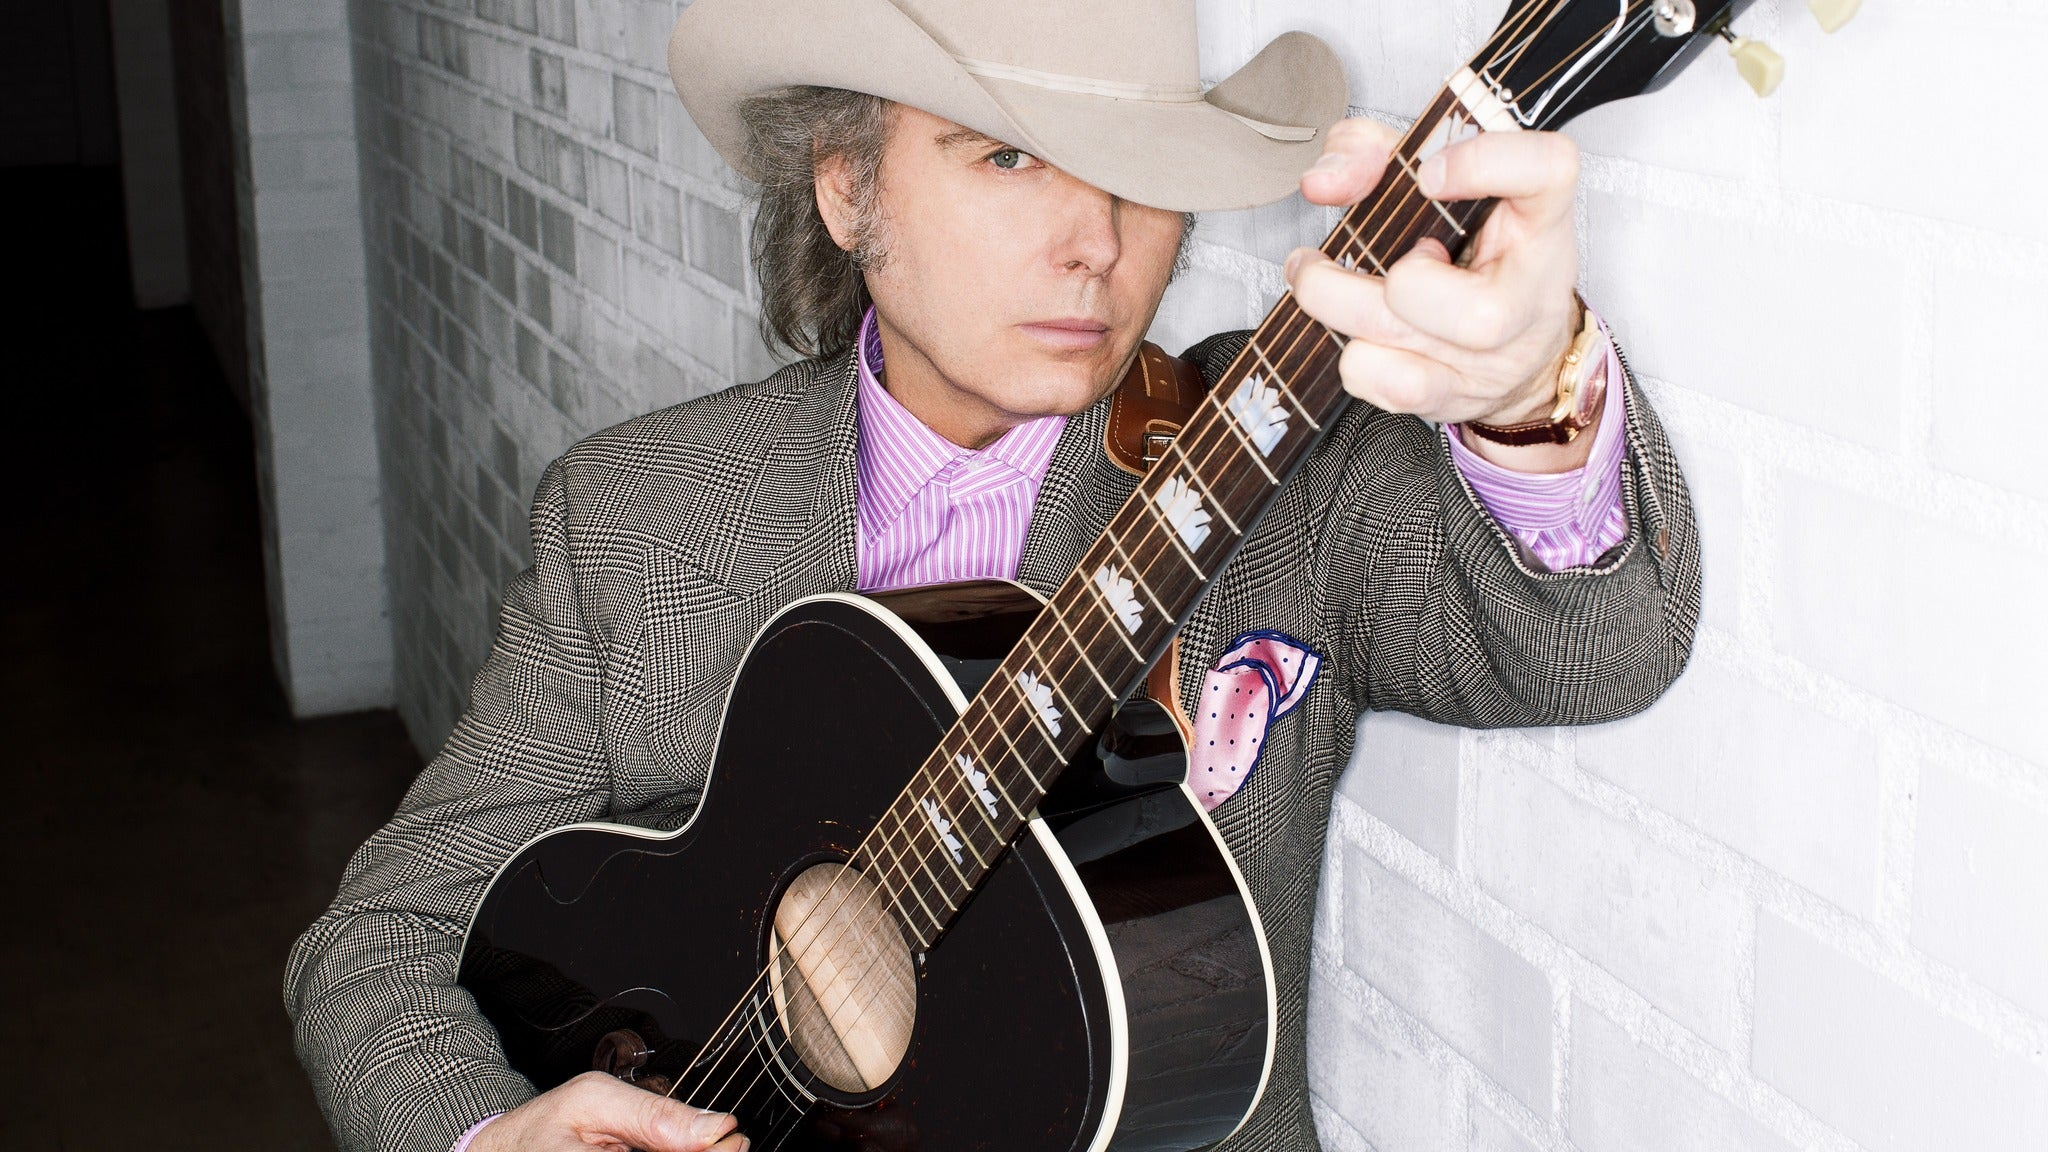 Dwight Yoakam at Verizon Arena - North Little Rock, AR 72114